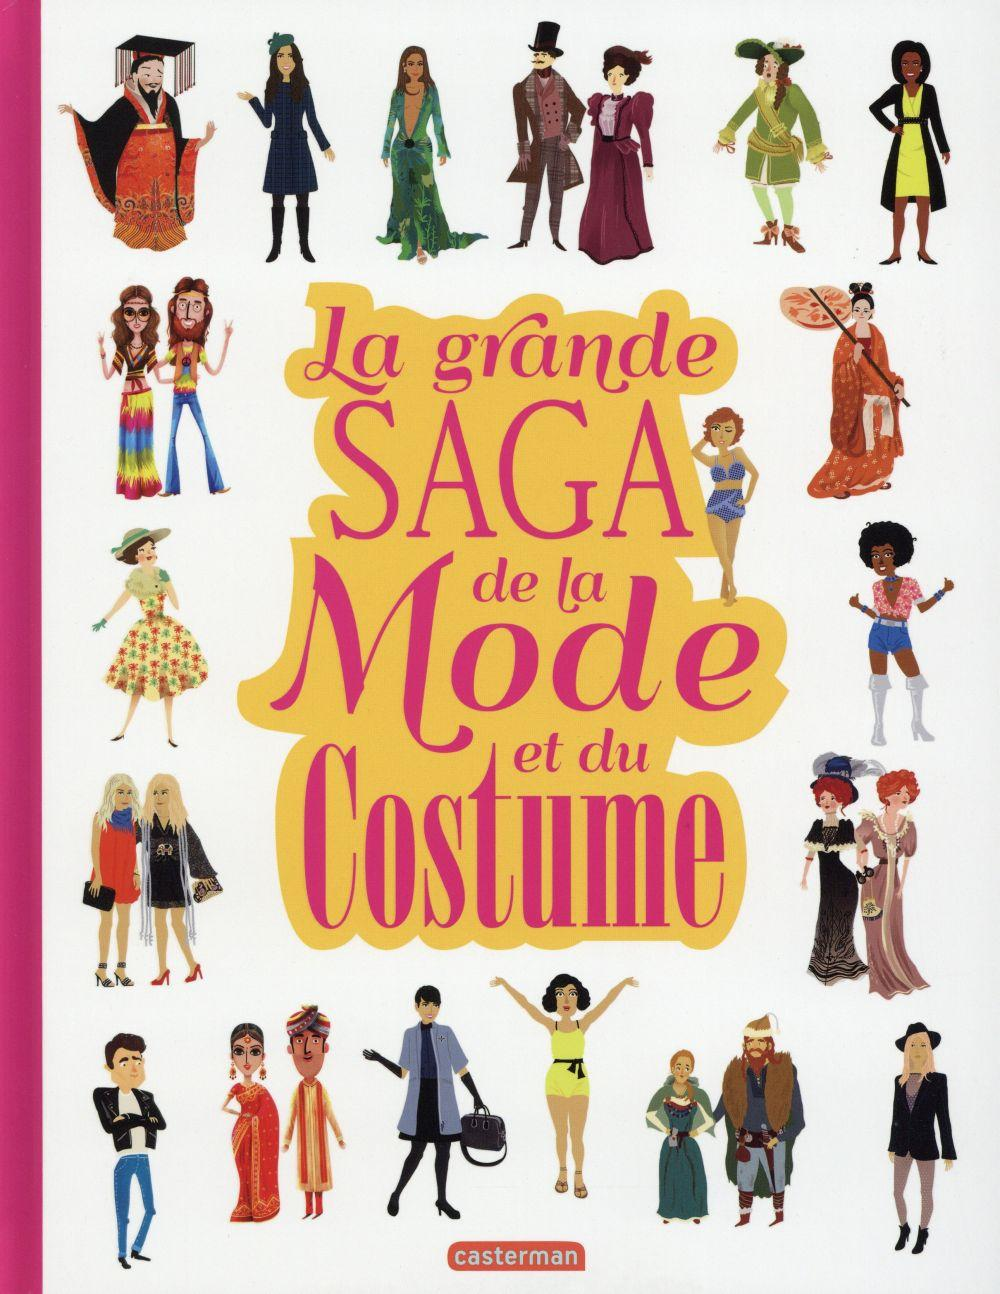 La grande saga de la mode et du costume  - Collectif